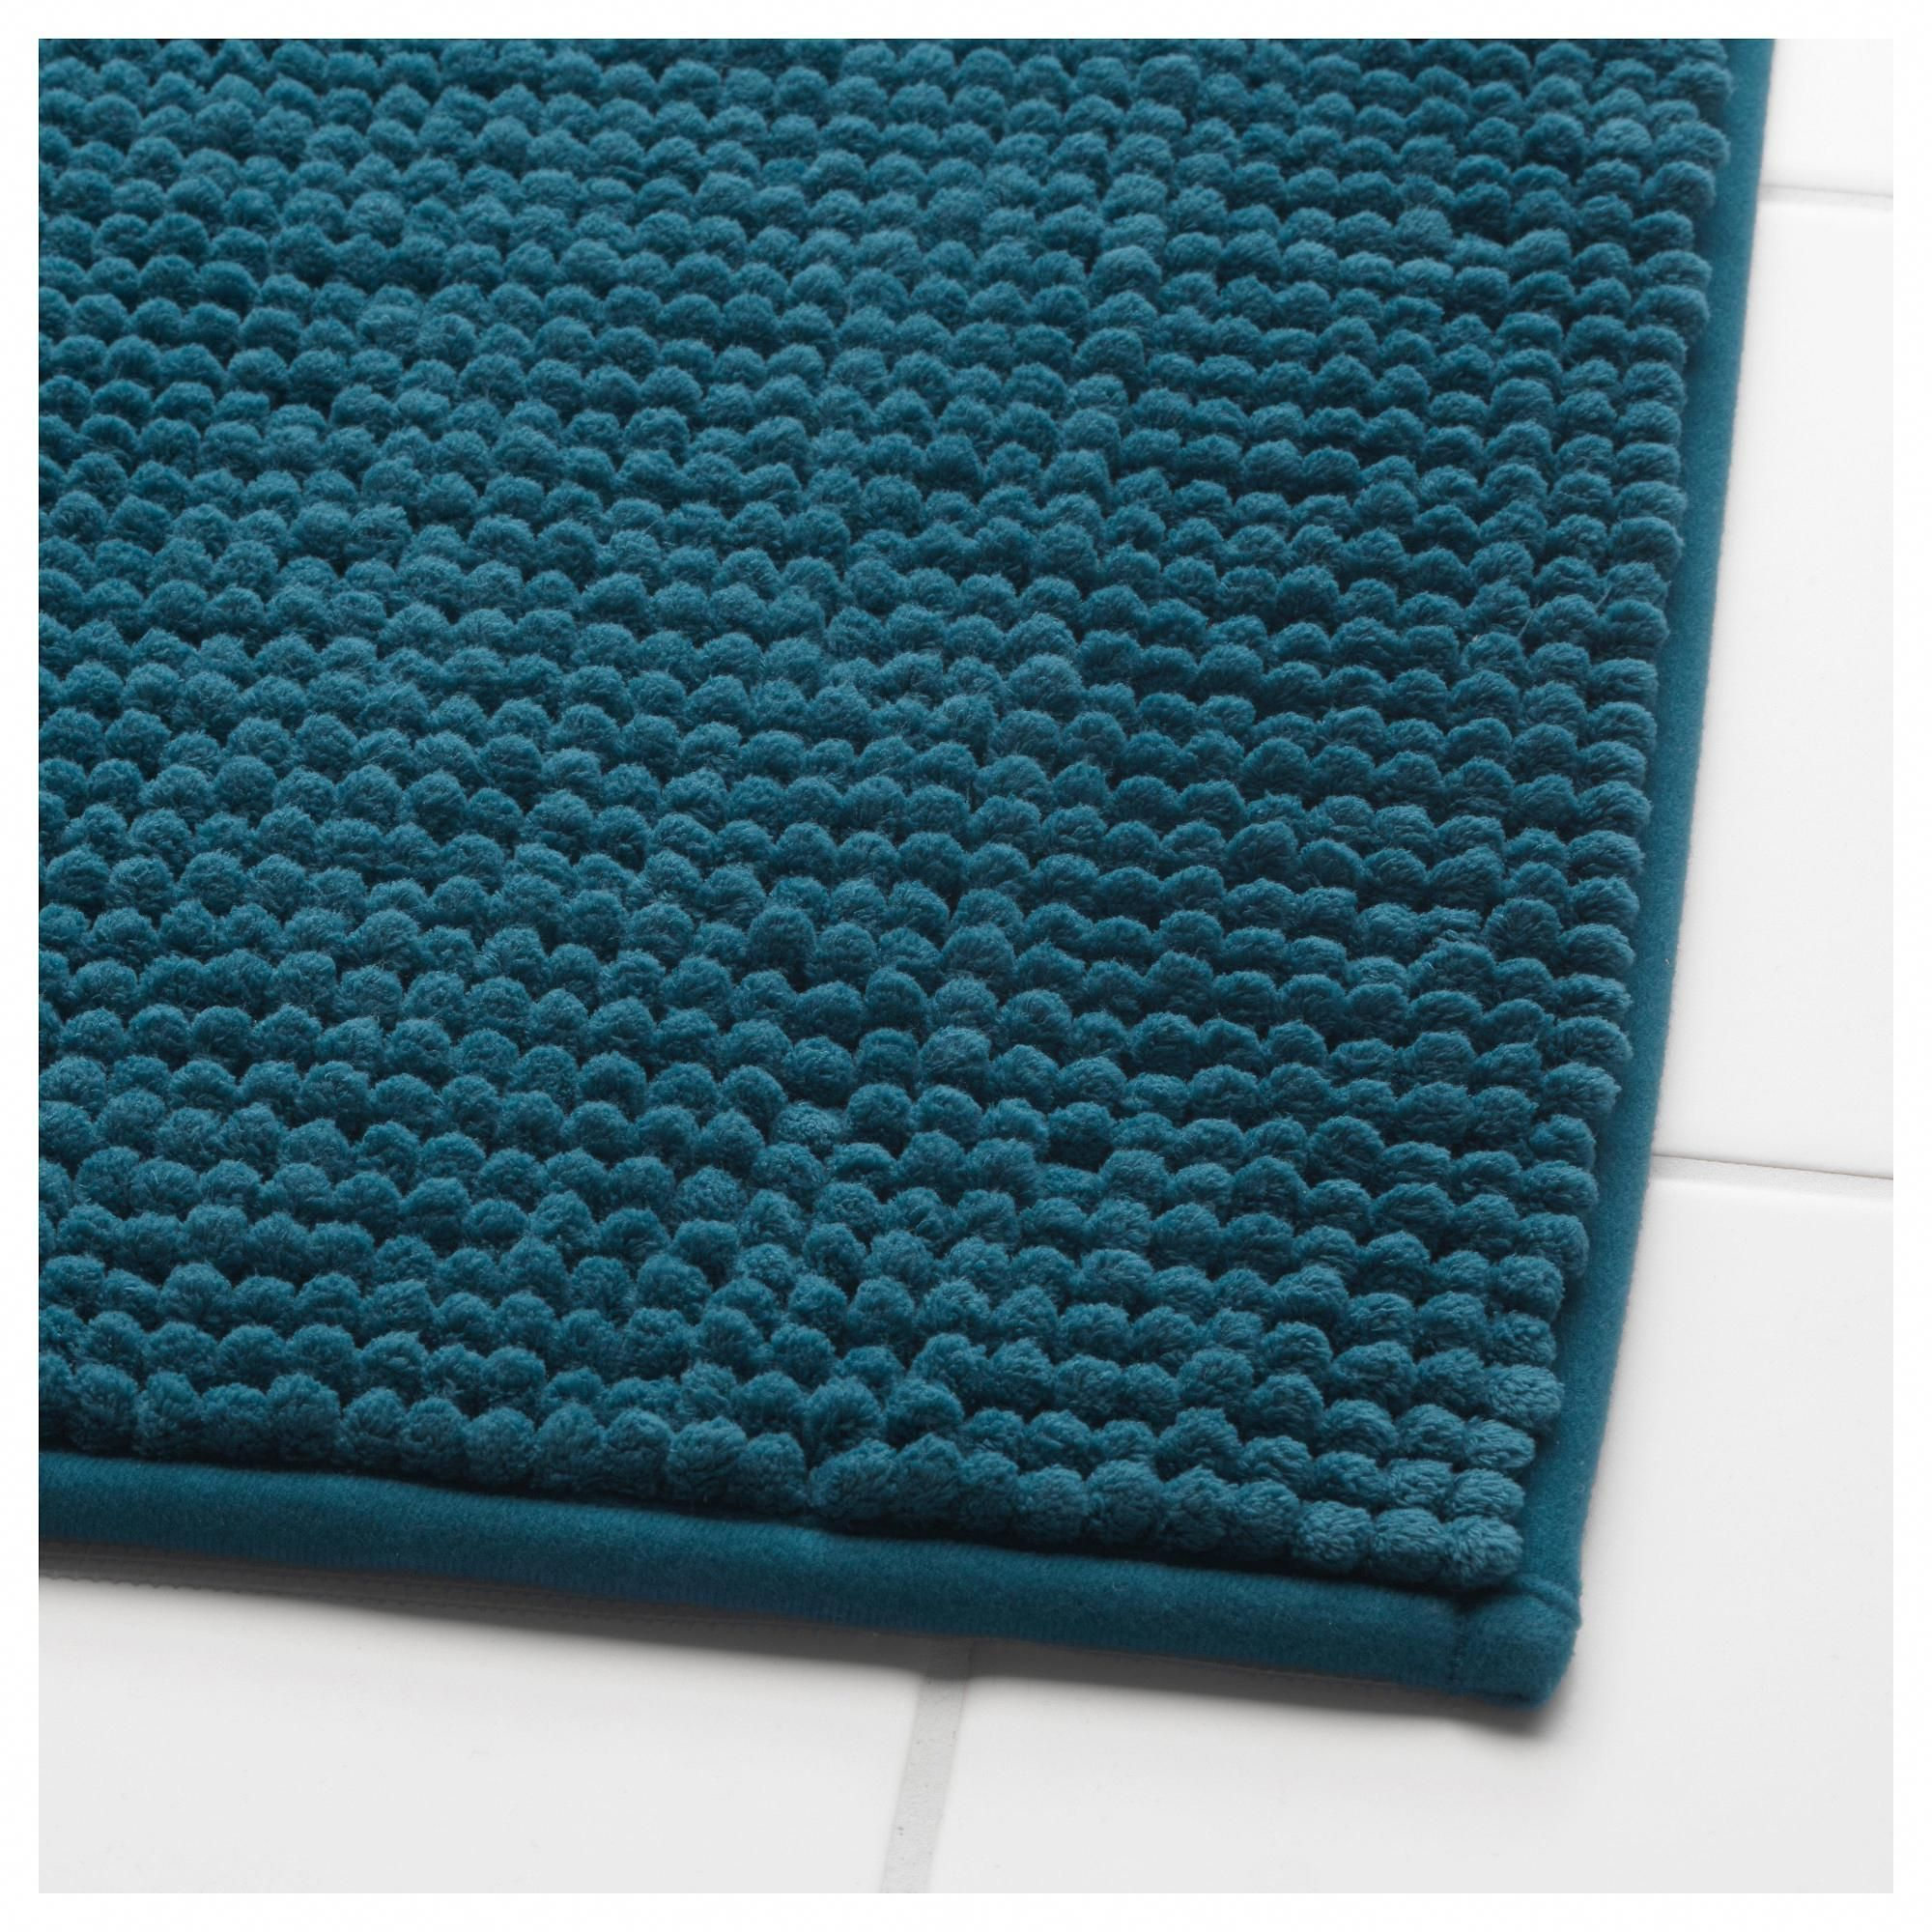 Ikea Toftbo Bath Mat Green Blue In 2019 Teal Bathroom Bathroom